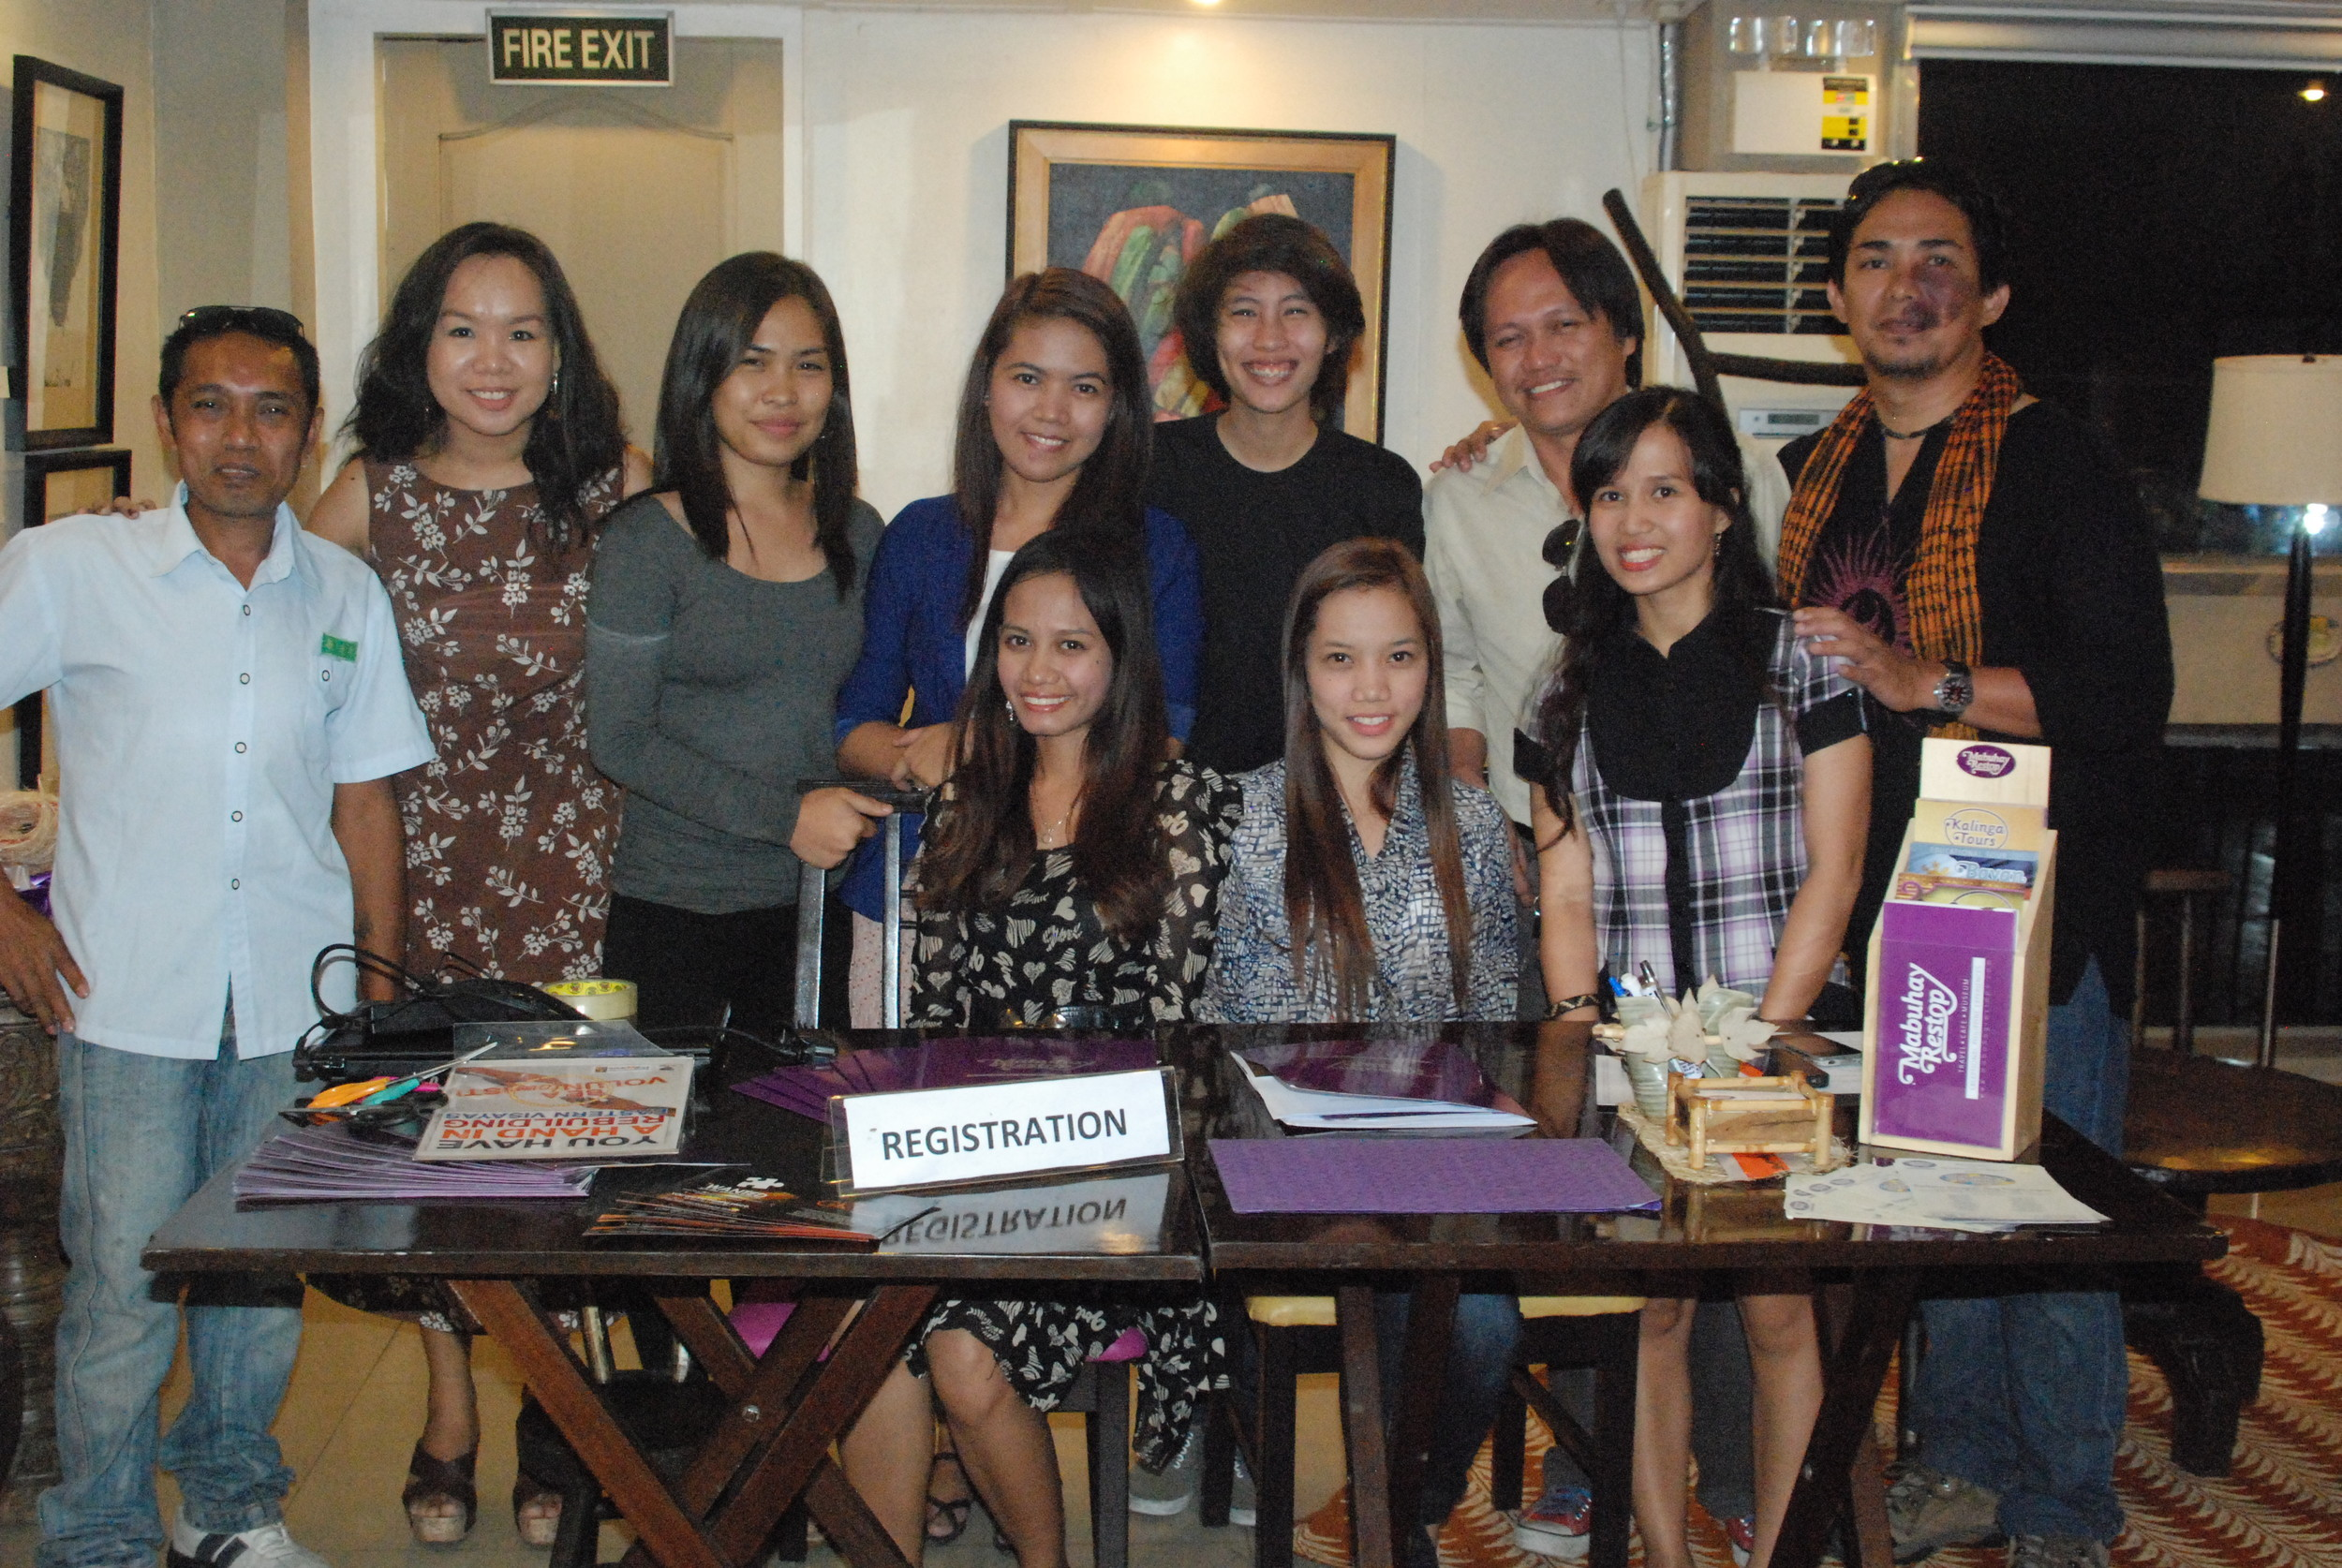 Mabuhay Restop Intern Anne Pagkalinawan poses with co-workers at an event.